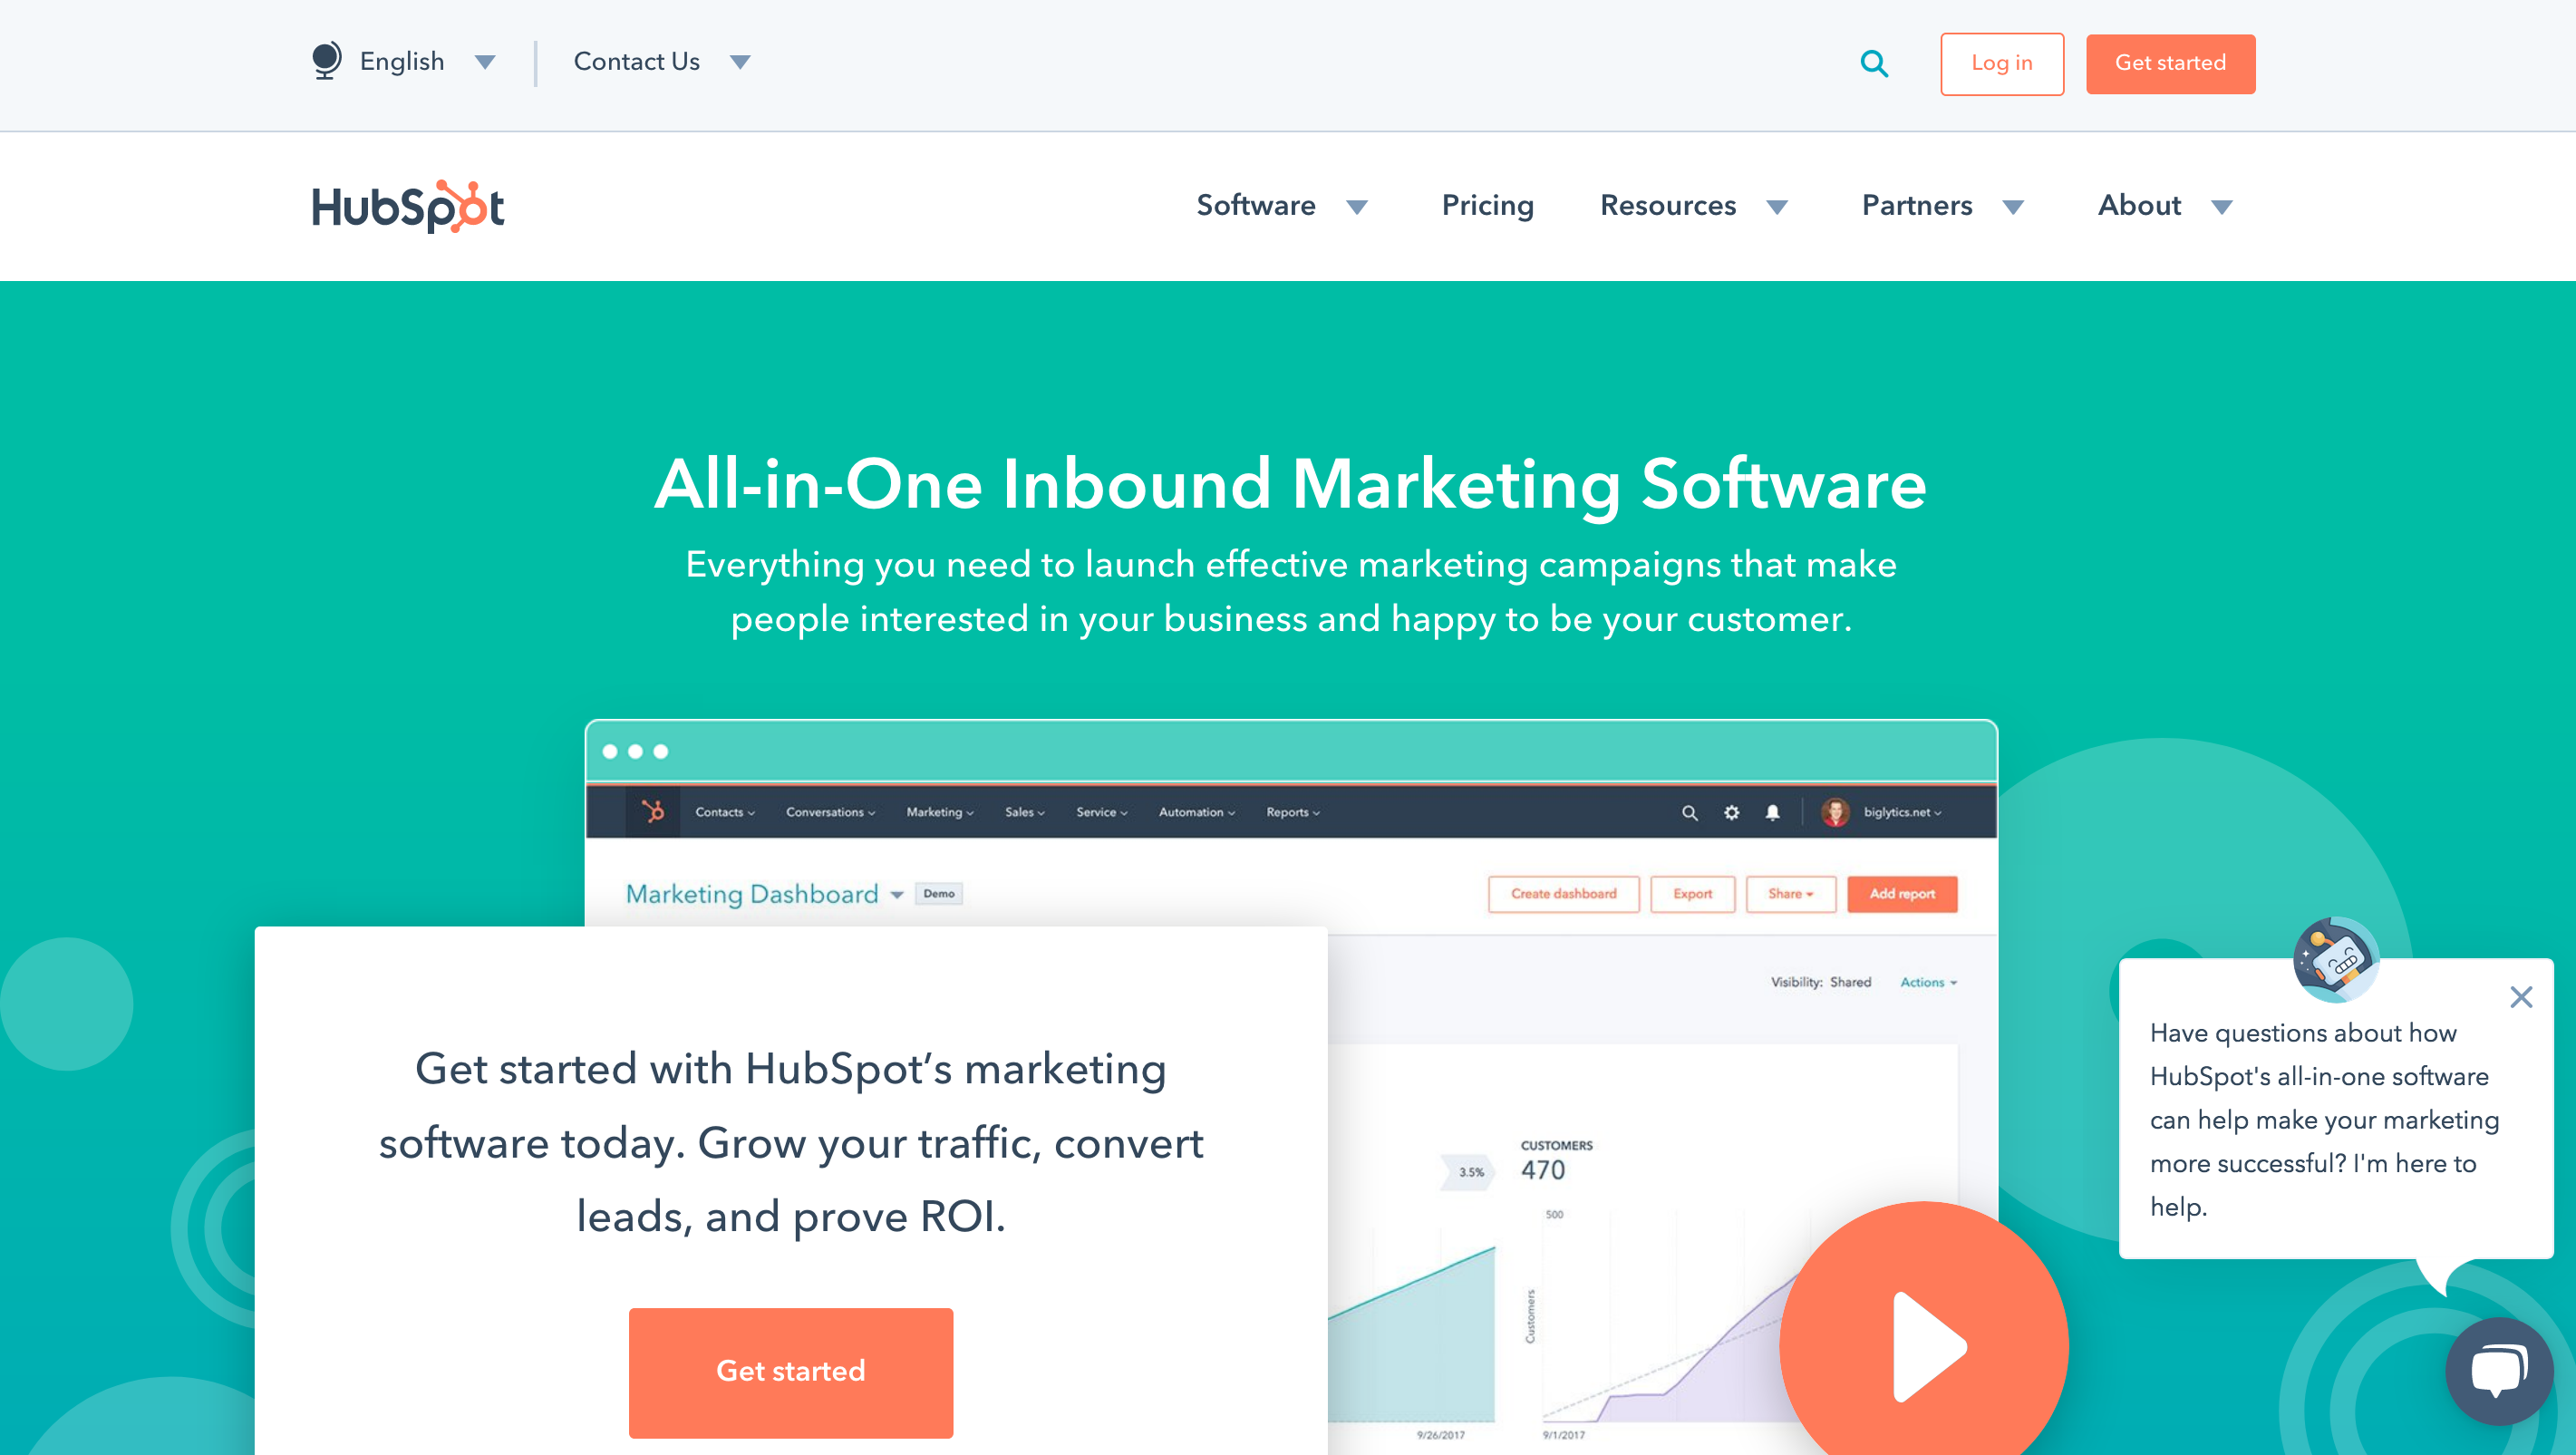 JONESBlog-valuable-content-hubspot2